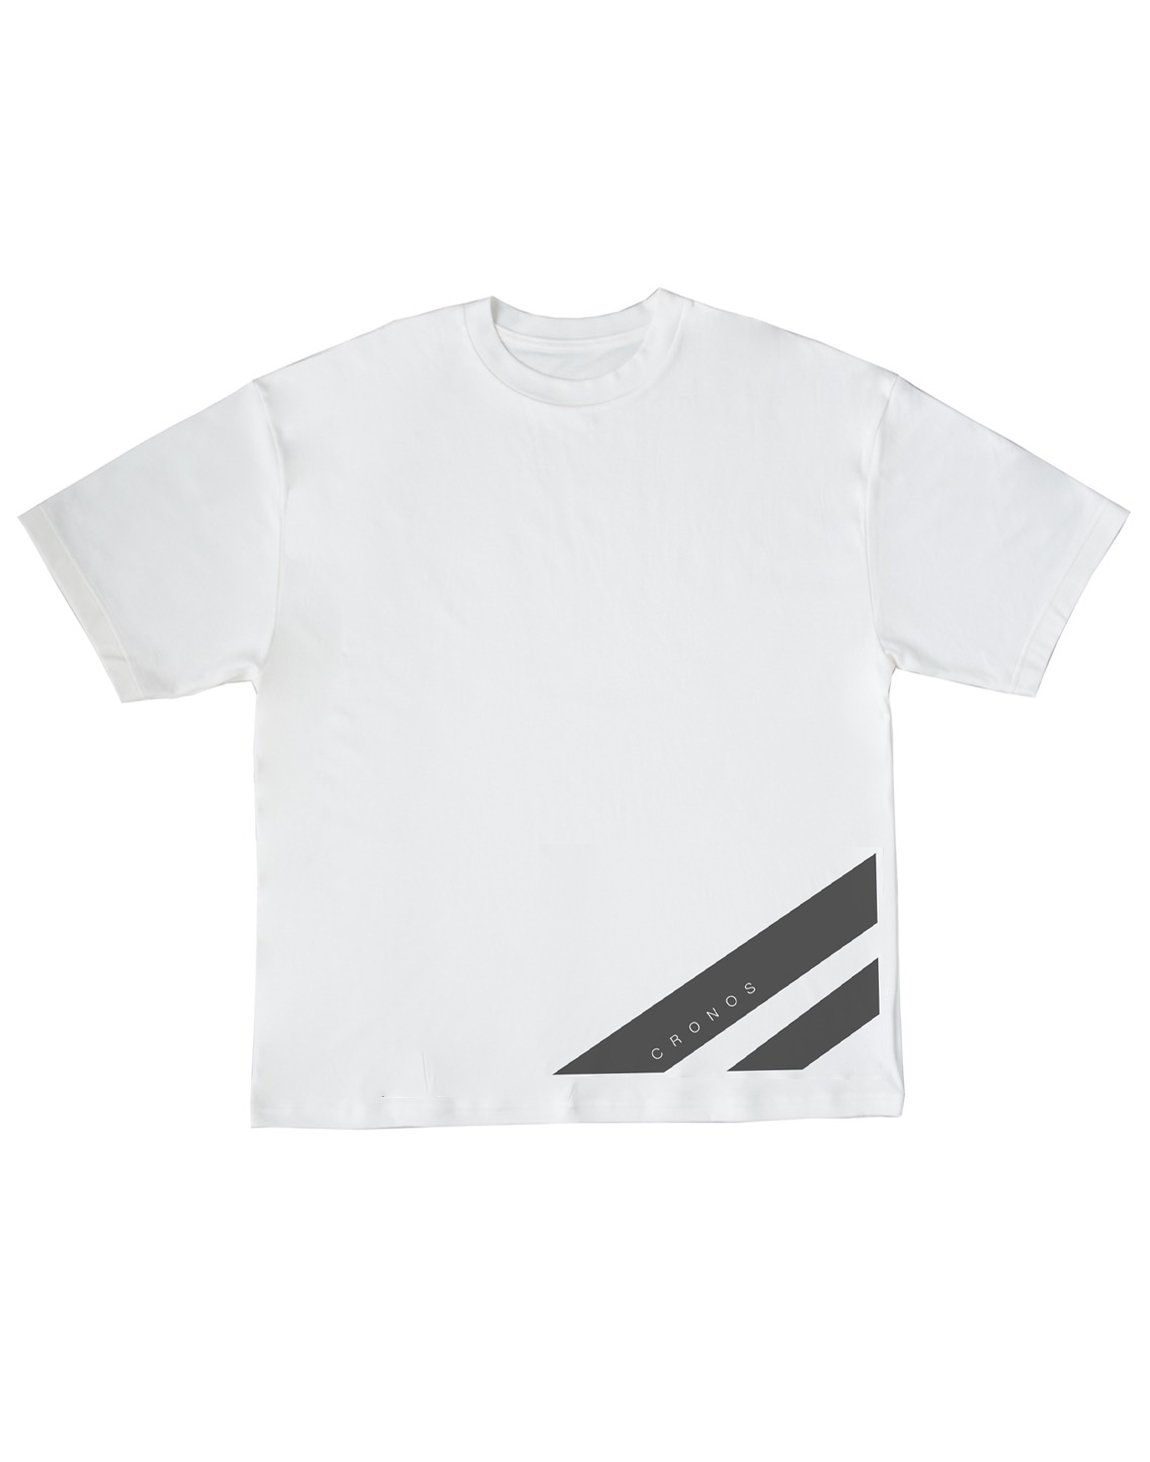 CRONOS STRIPE LOGO NEW OVER SIZE T-SHIRTS【WHITE】